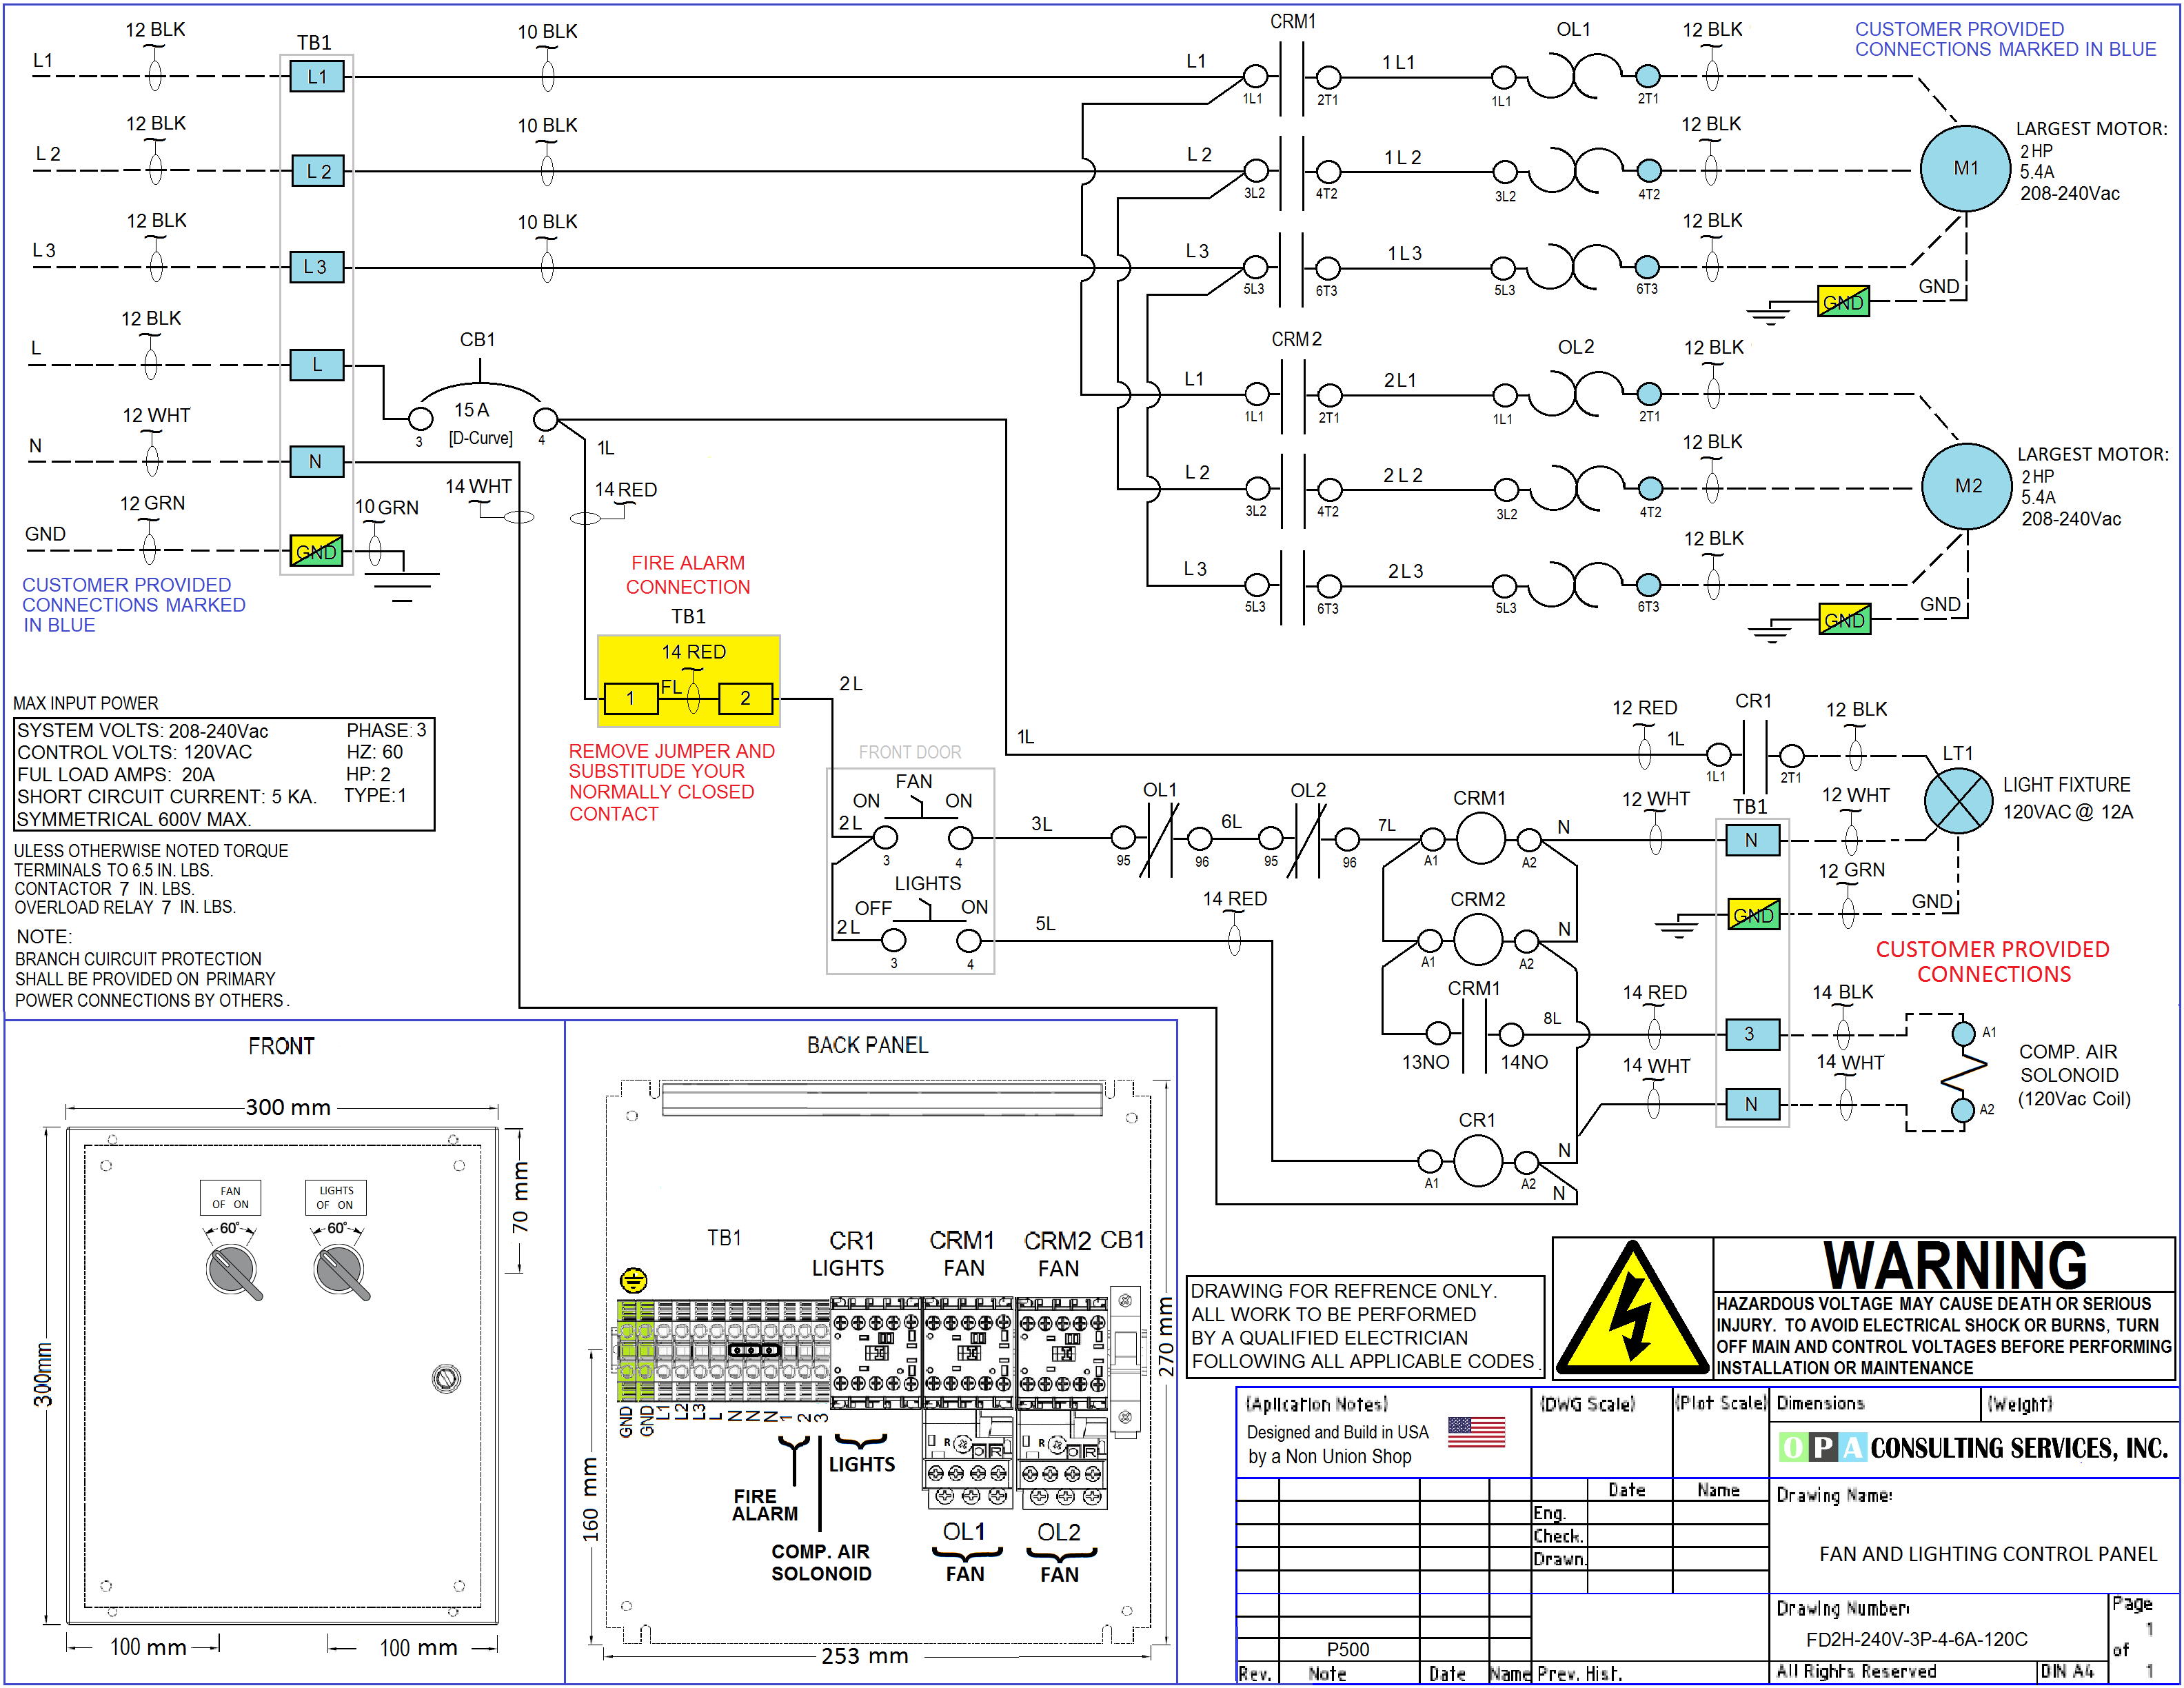 OPA Consulting Services, Inc.   Spray Booth Wiring Diagram      OPA Consulting Services, Inc.